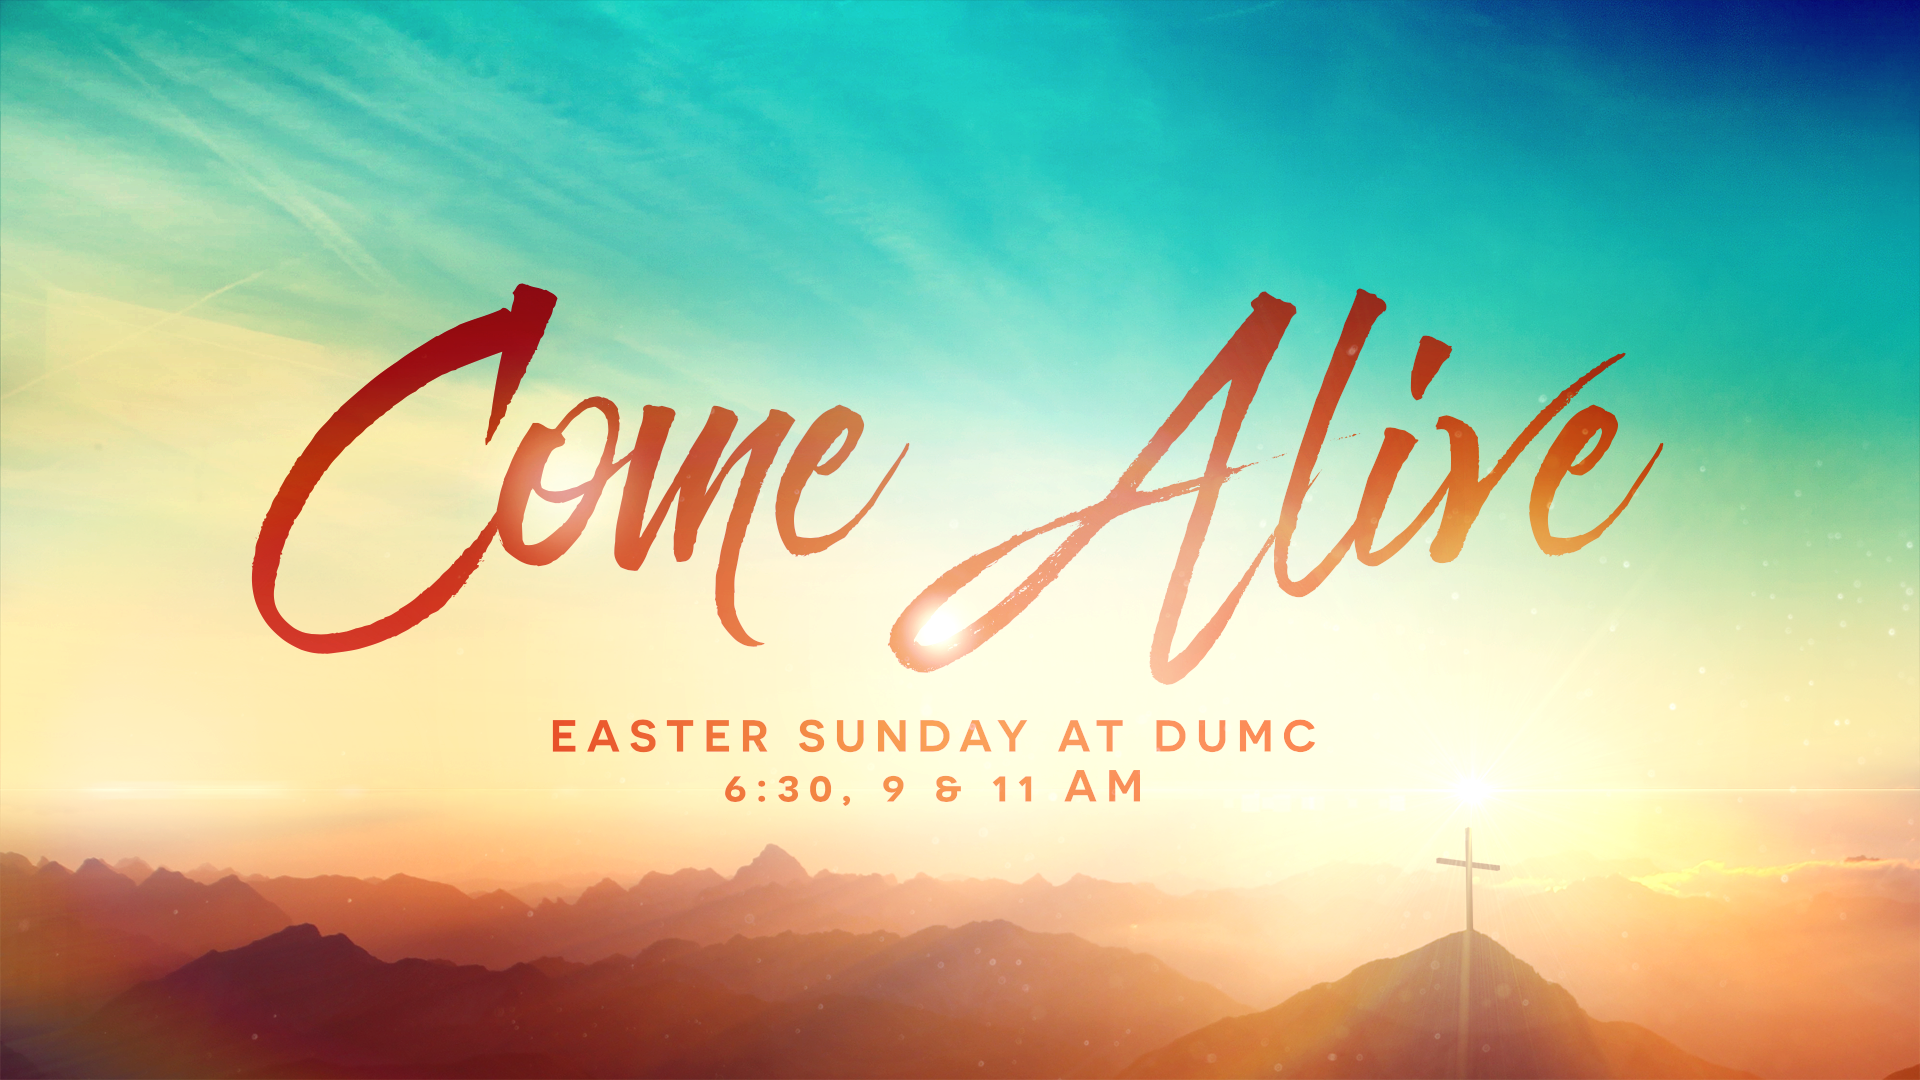 Risen%25252520Easter%25252520Sunday%25252520Church%25252520PowerPoint_presentation.png